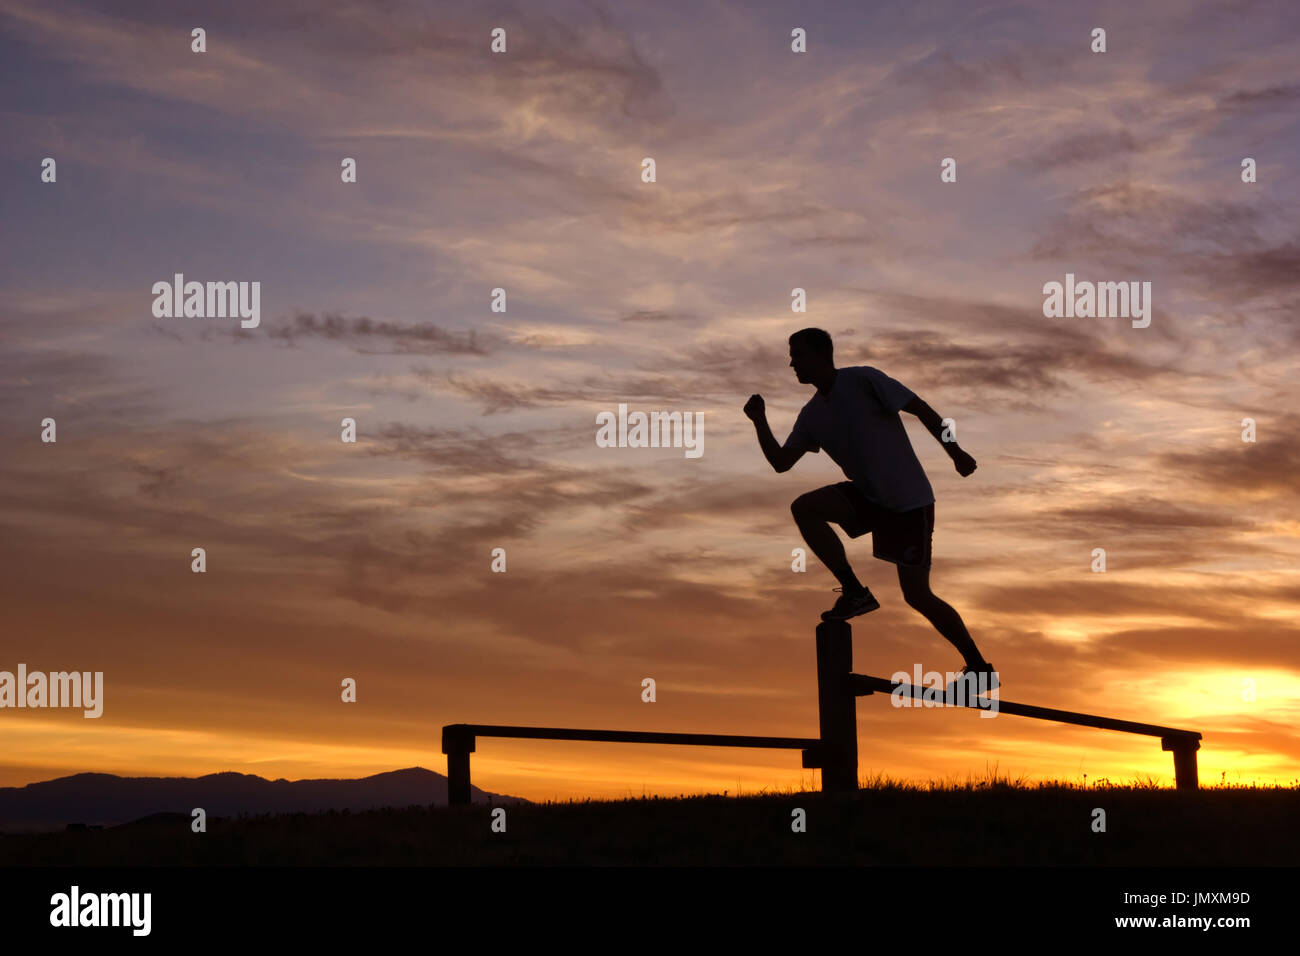 Shadow Runner, Athelete against an awesome sunrise - Stock Image